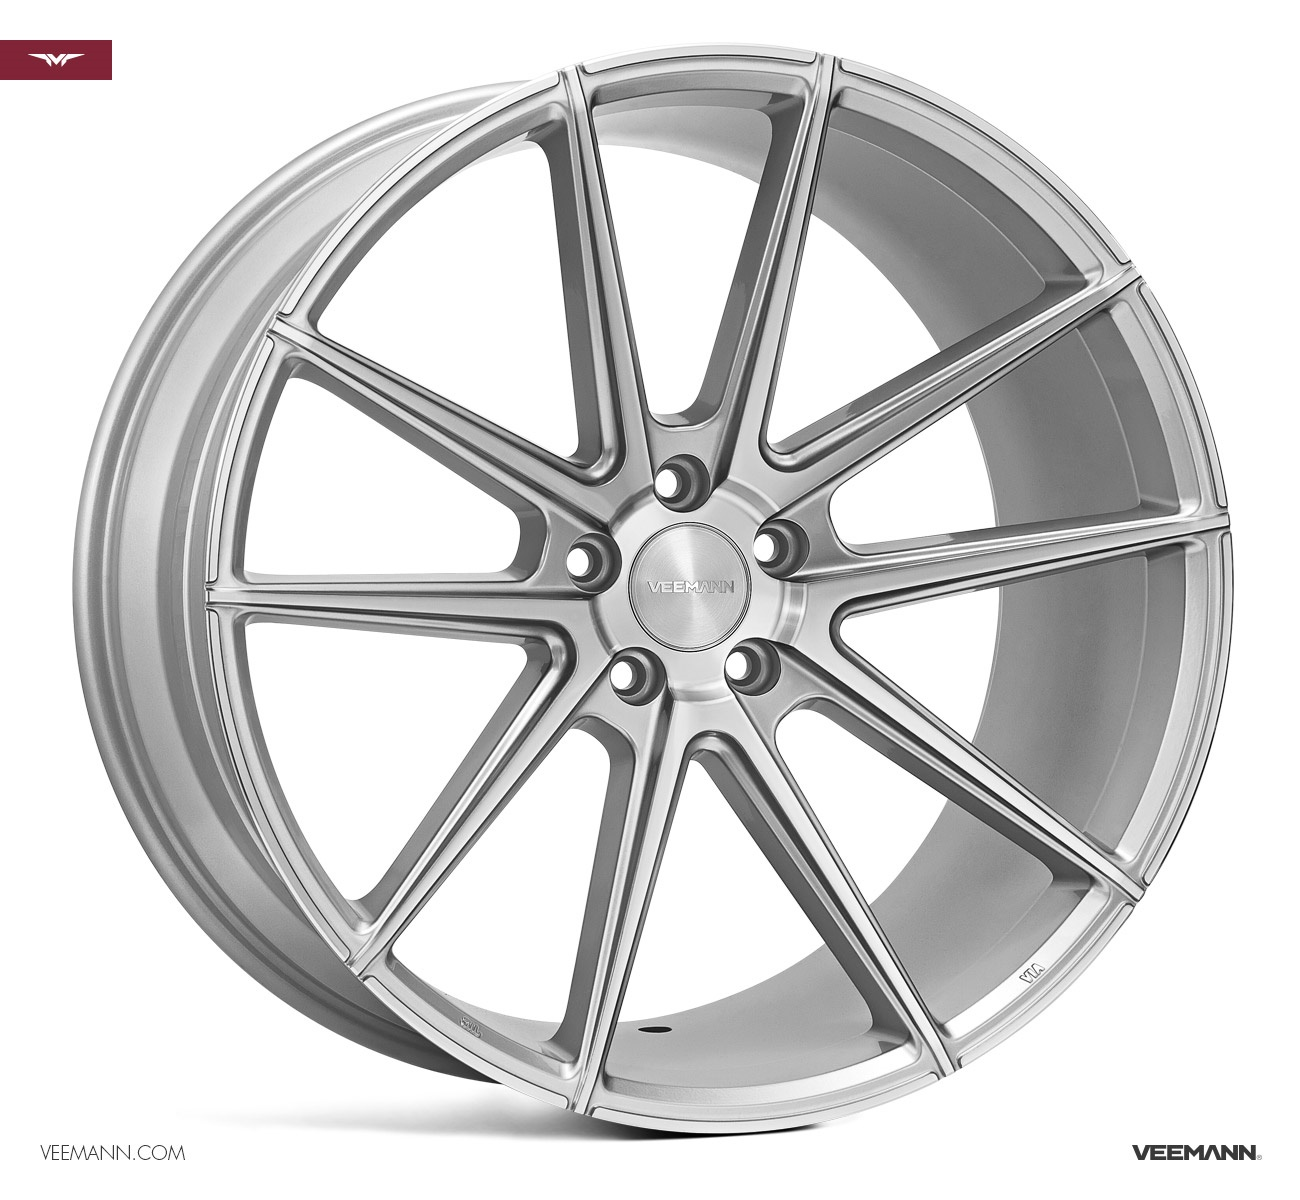 "NEW 21"" VEEMANN V-FS4 ALLOY WHEELS IN SILVER POL WITH DEEPER CONCAVE 10.5"" REARS et35/et42"